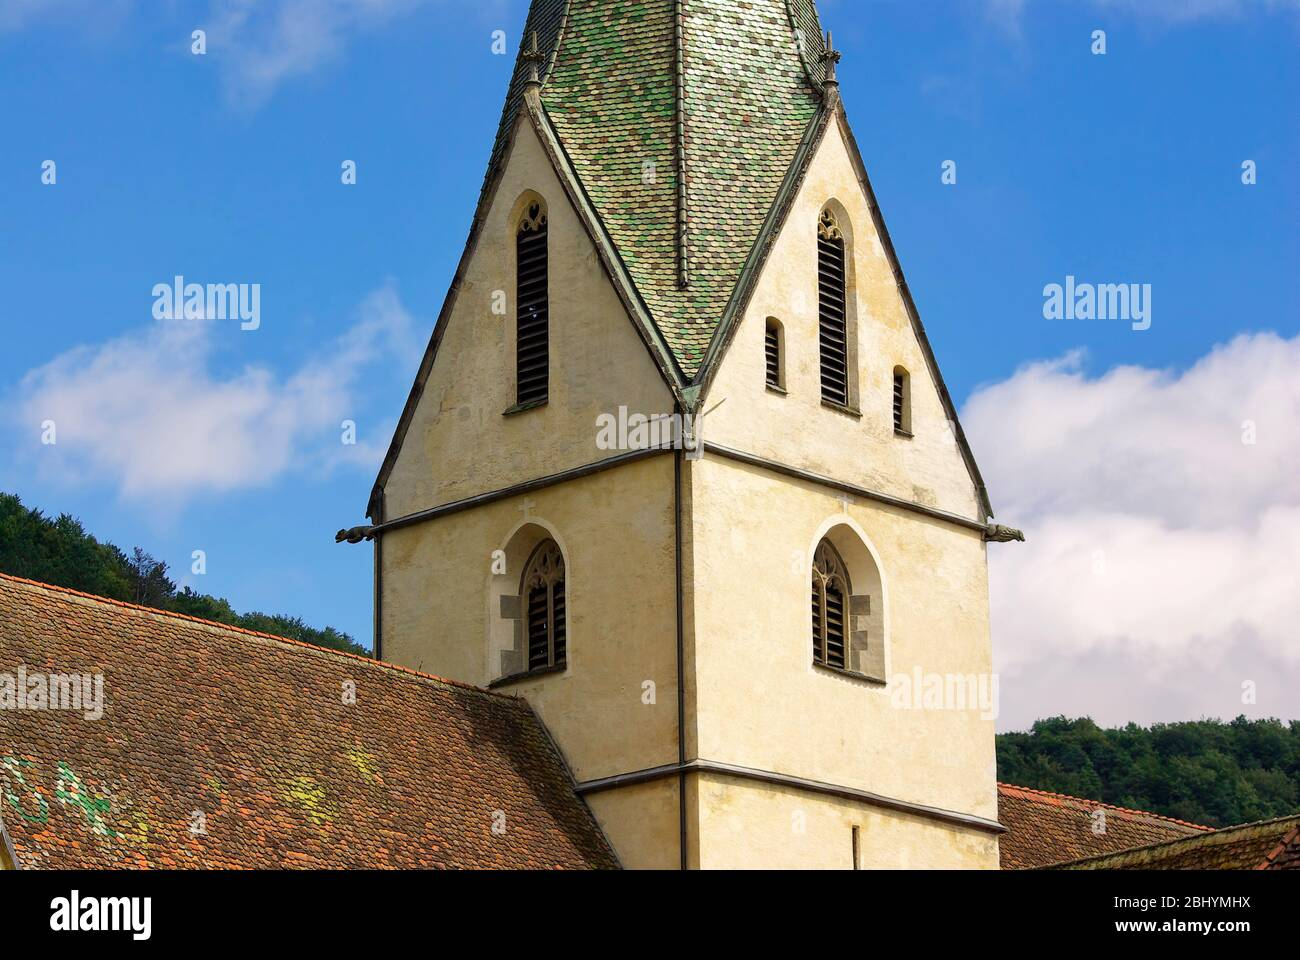 Detail of the roof and steeple of the monastery church of the Blaubeuren Abbey near Ulm, Baden-Wurttemberg, Germany. Stock Photo